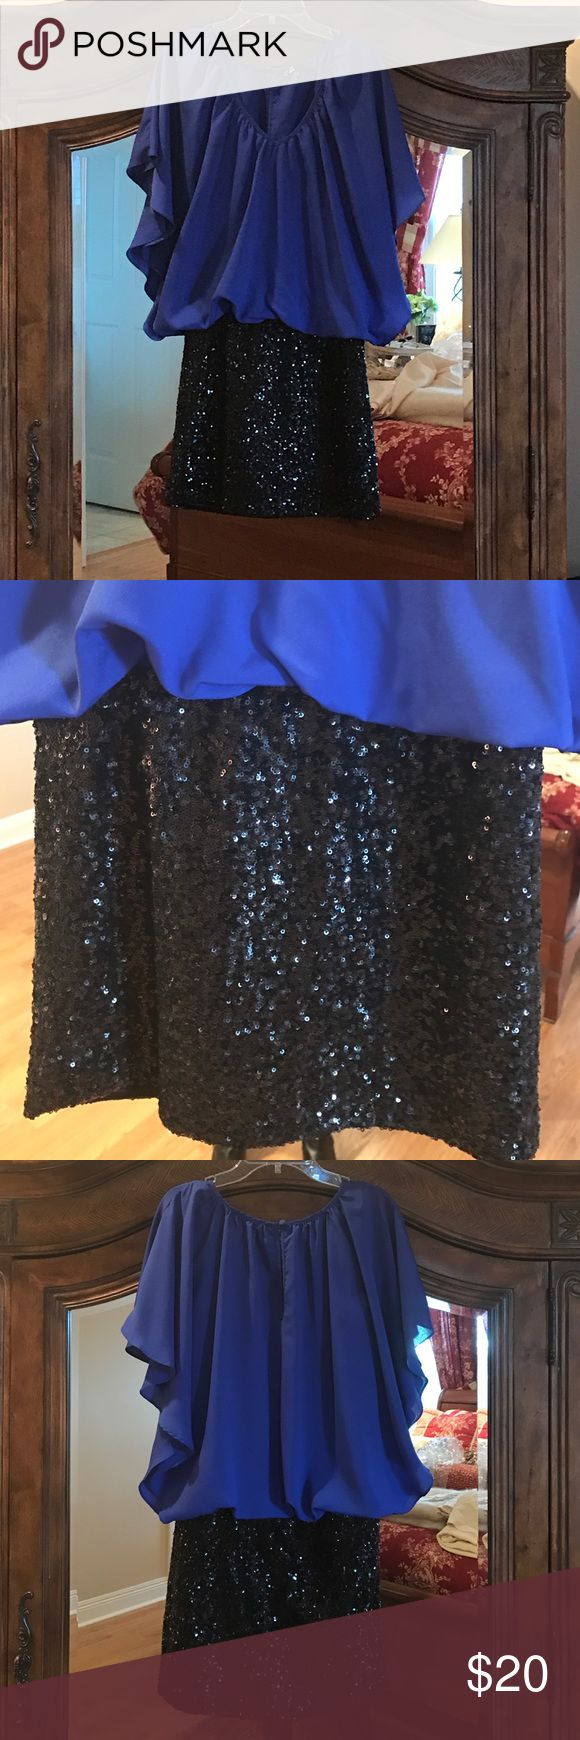 Party dress One piece dress...electric blue top and black sequin mini.  No stains or sequins missing. Dresses Mini